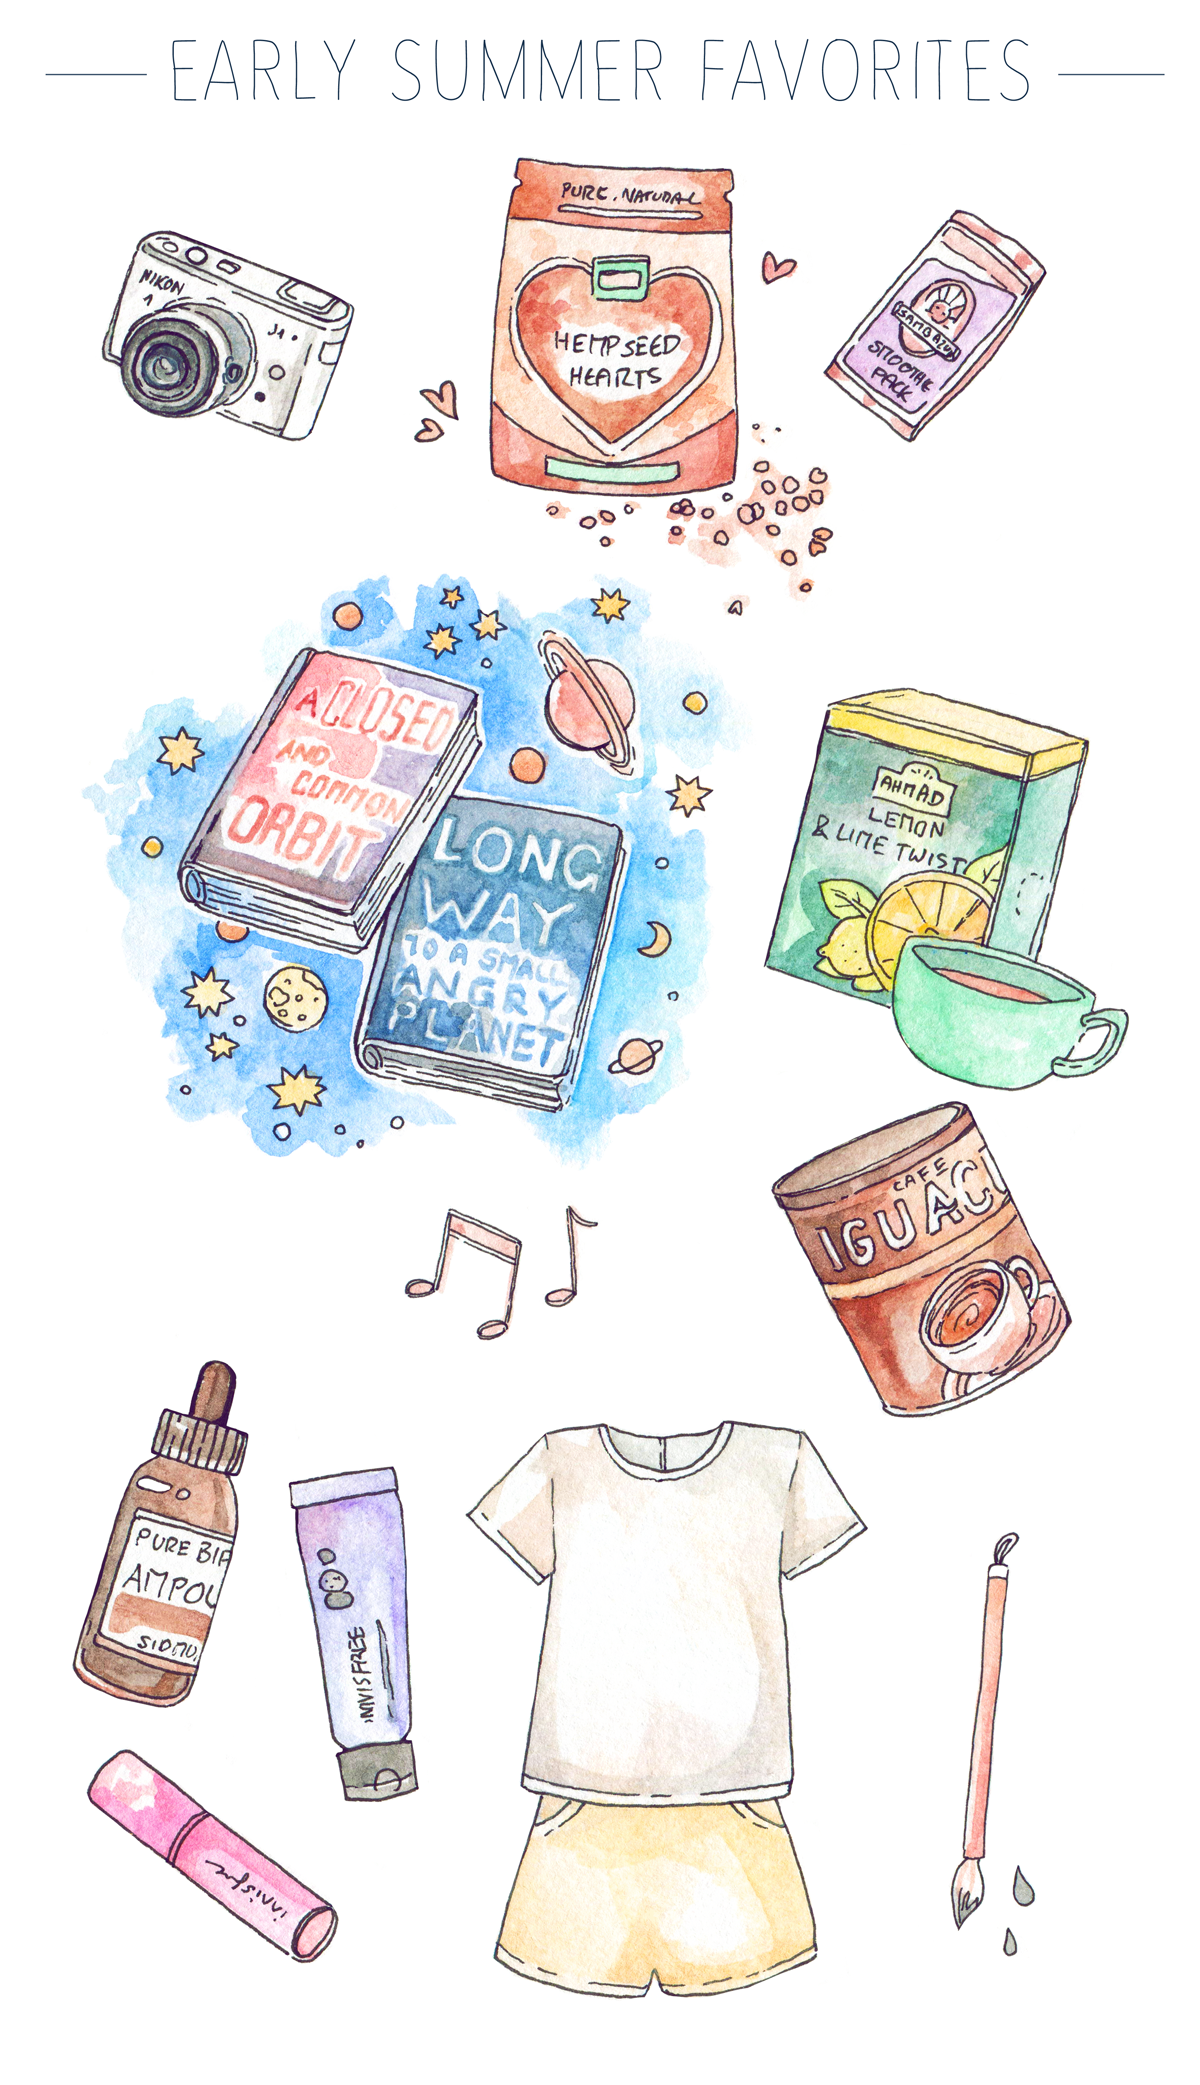 My illustrated May favorites on the blog!  Korean skincare and beauty from Innisfree and Sidmool, Korean calligraphy brushes, summer outfits, music and book favorites, healthy vegan food, tea and coffee - a round-up of all the things that brought me joy in early summer!